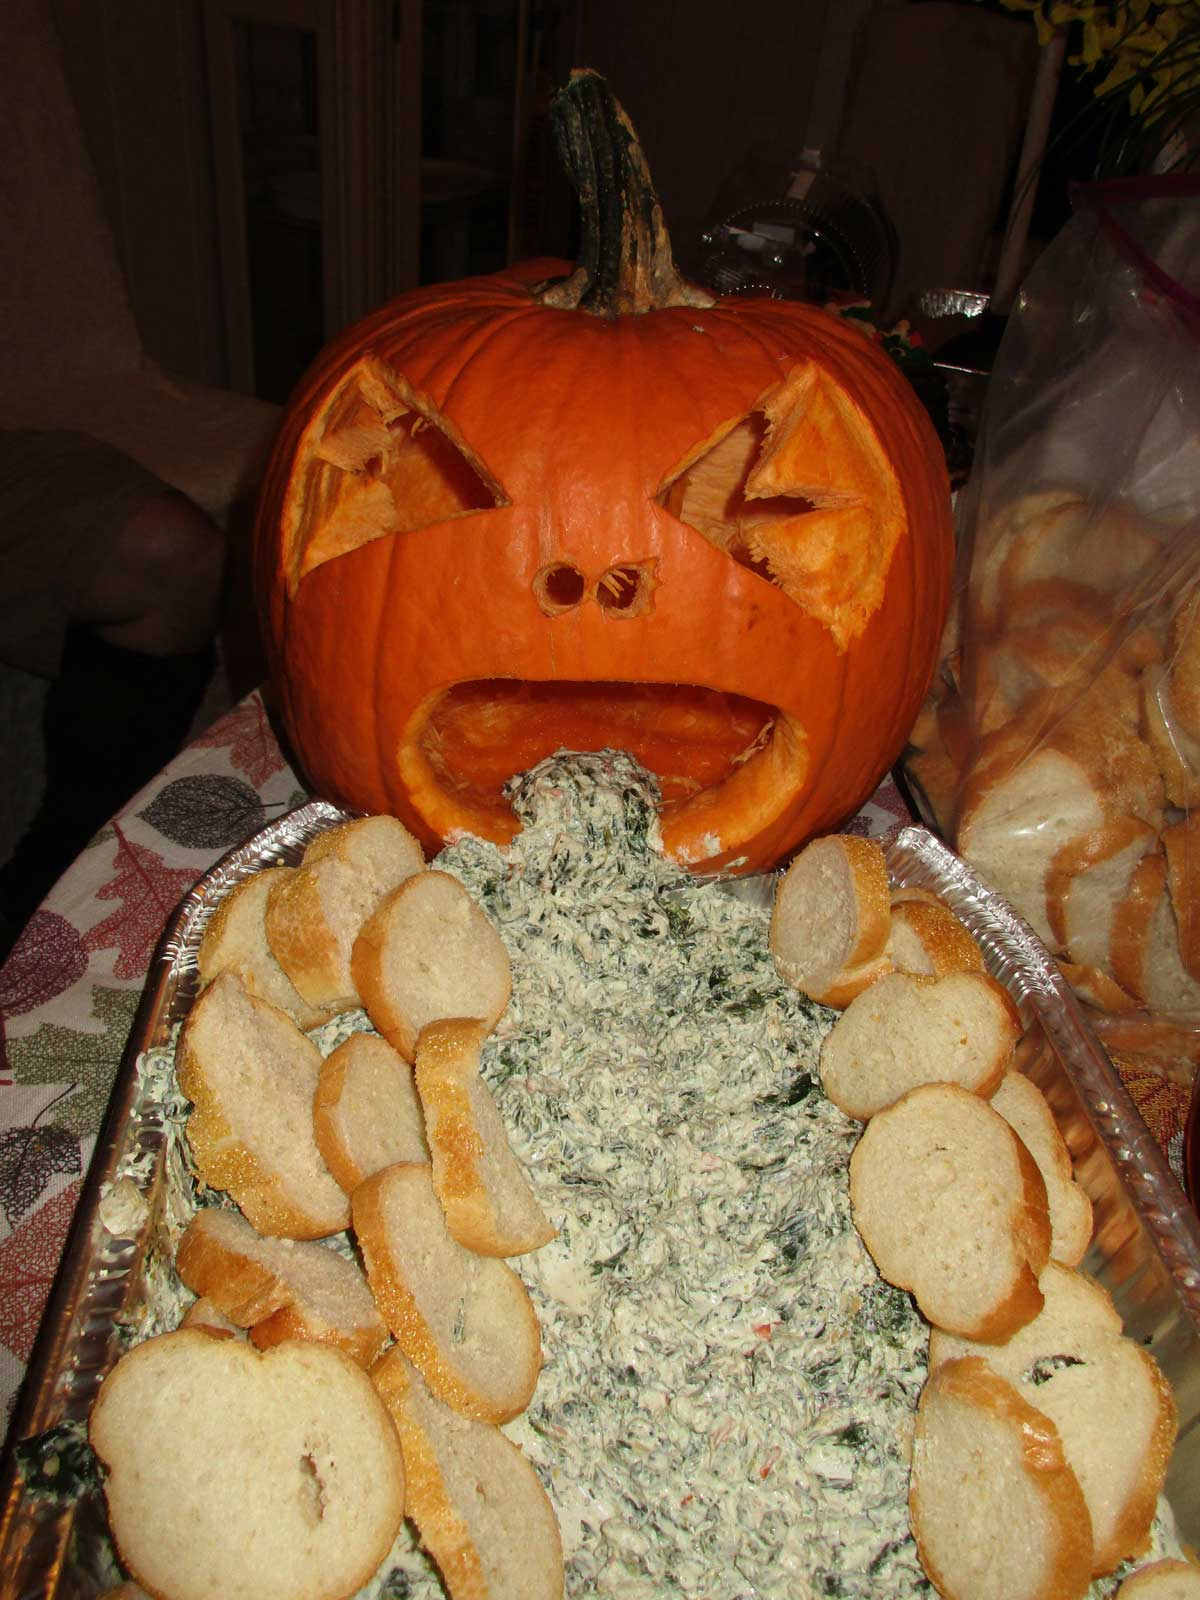 Pictures of Truly Disgusting Halloween Treats from The Party! Yum!